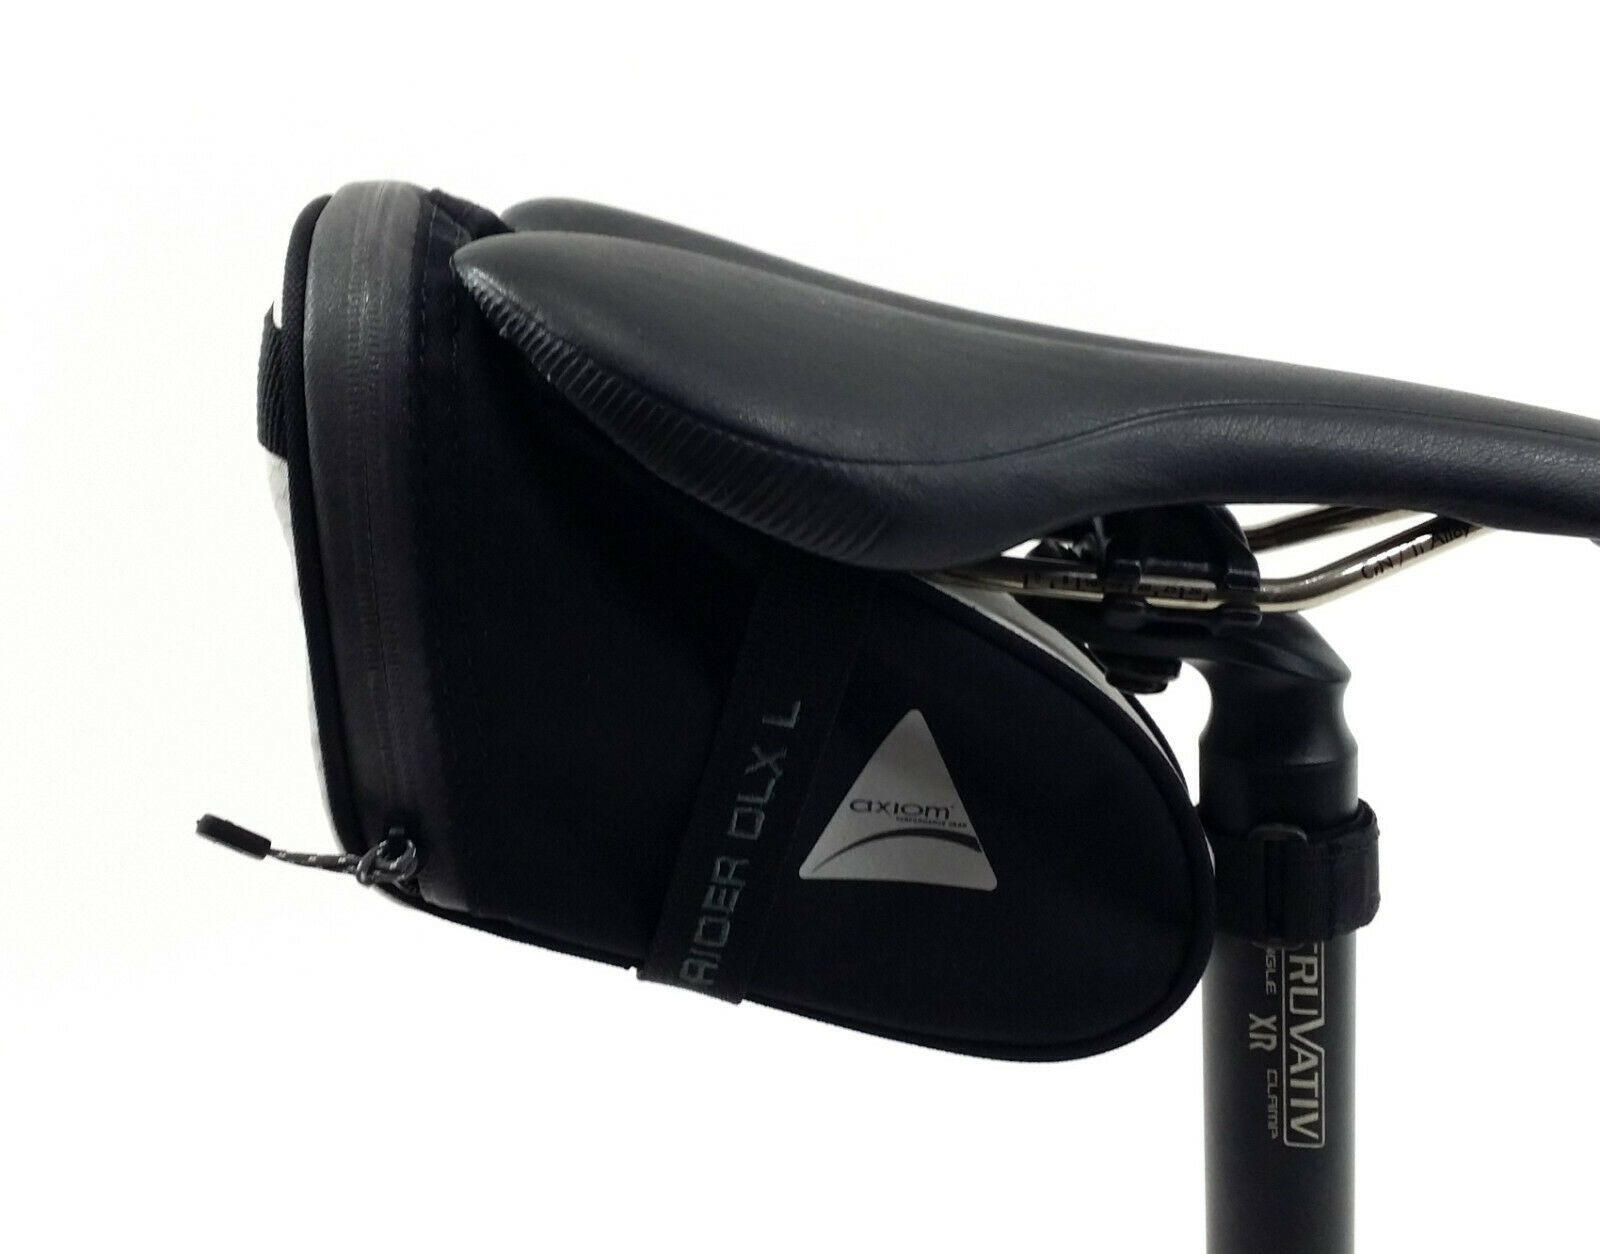 Large LG Red//Black NEW Axiom Rider DLX Bicycle//Bike Seat Bag